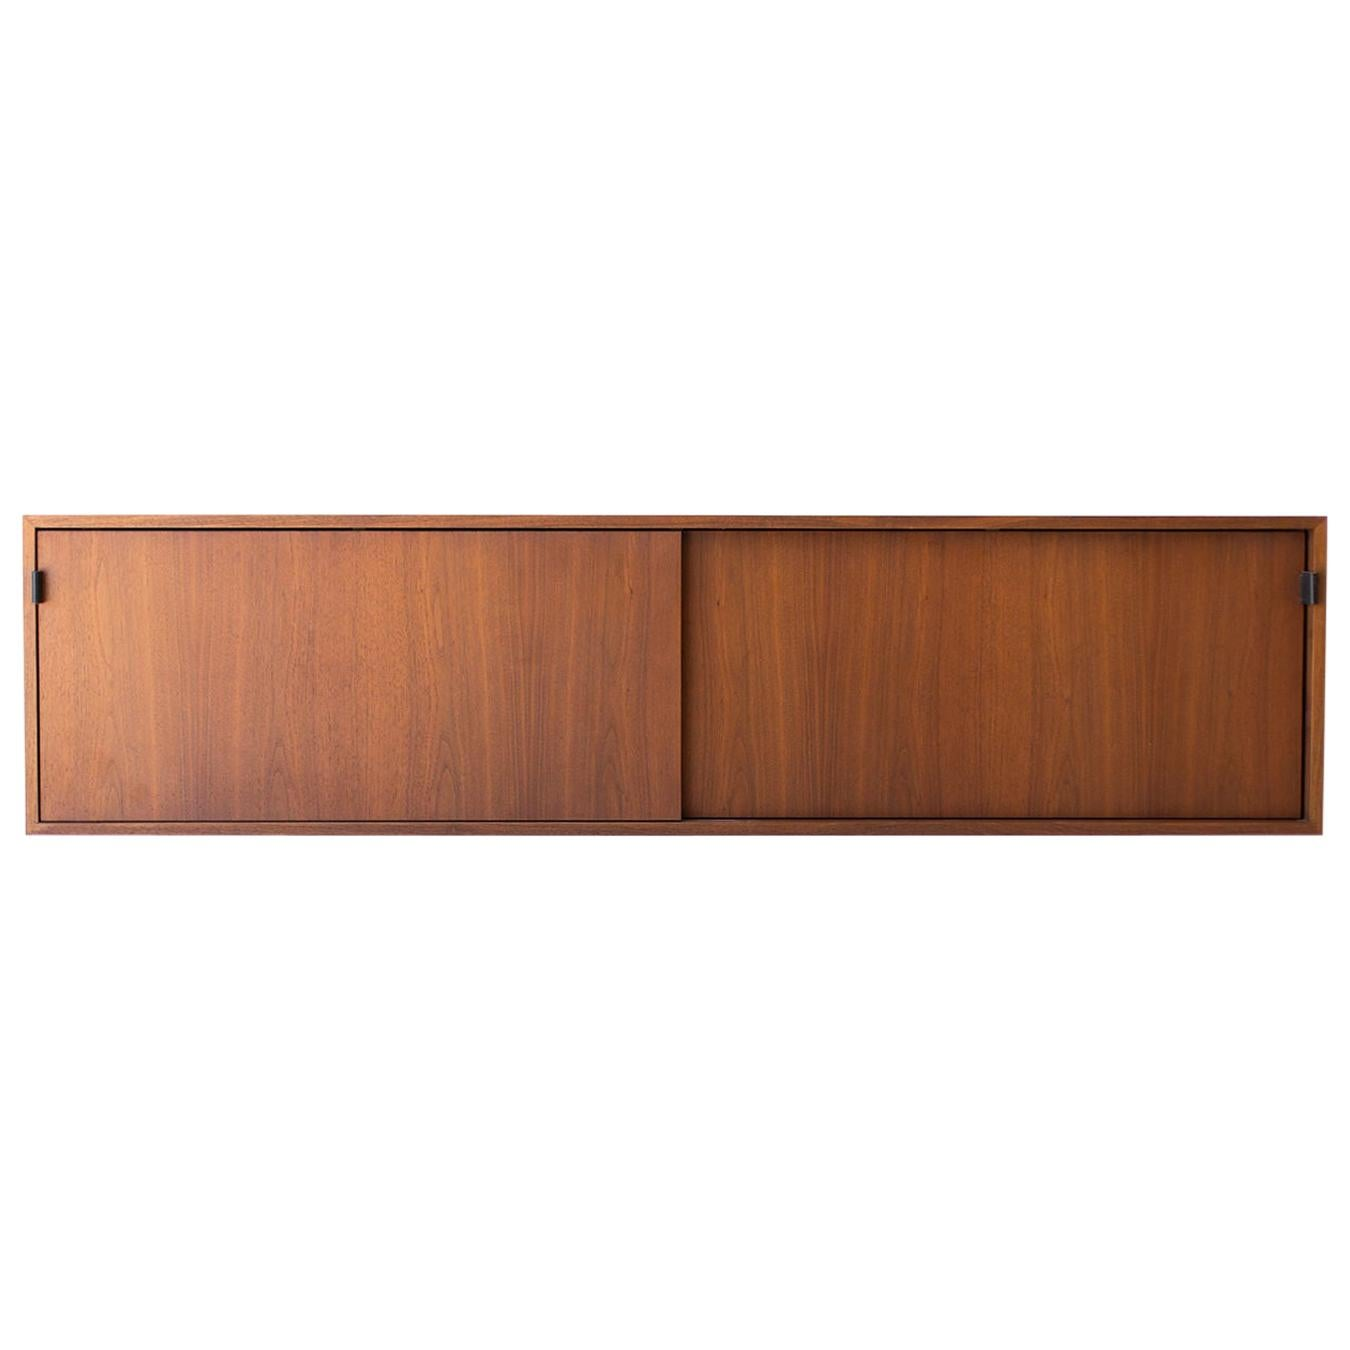 Florence Knoll Walnut Floating Credenza for Knoll Inc.